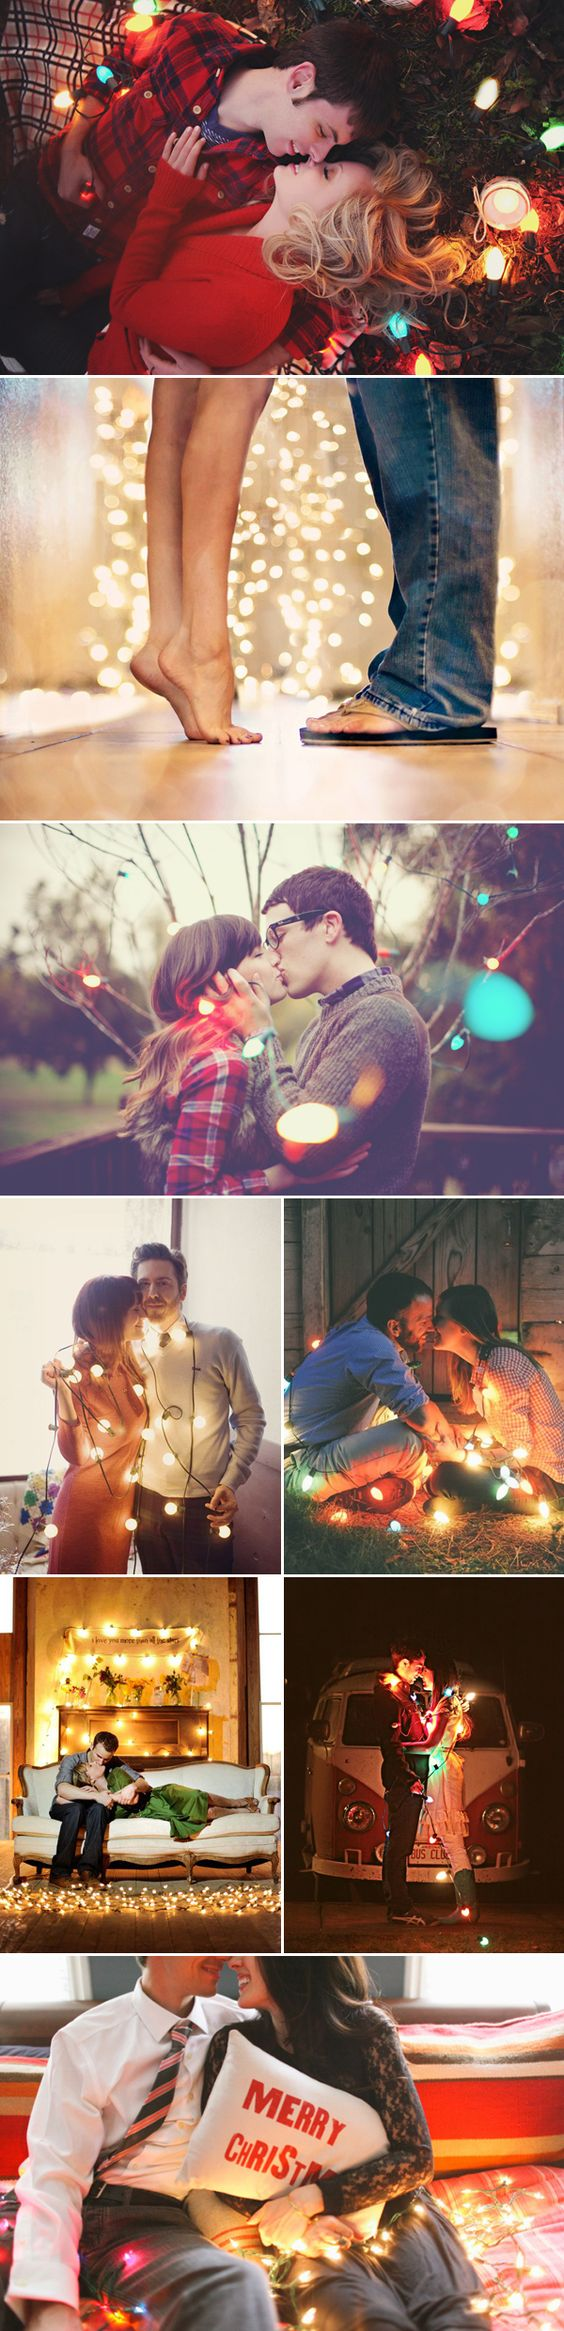 So Romantic! Ideas For Couple Photos Over Christmas - Looks SO Pretty With The Twinkling Lights!